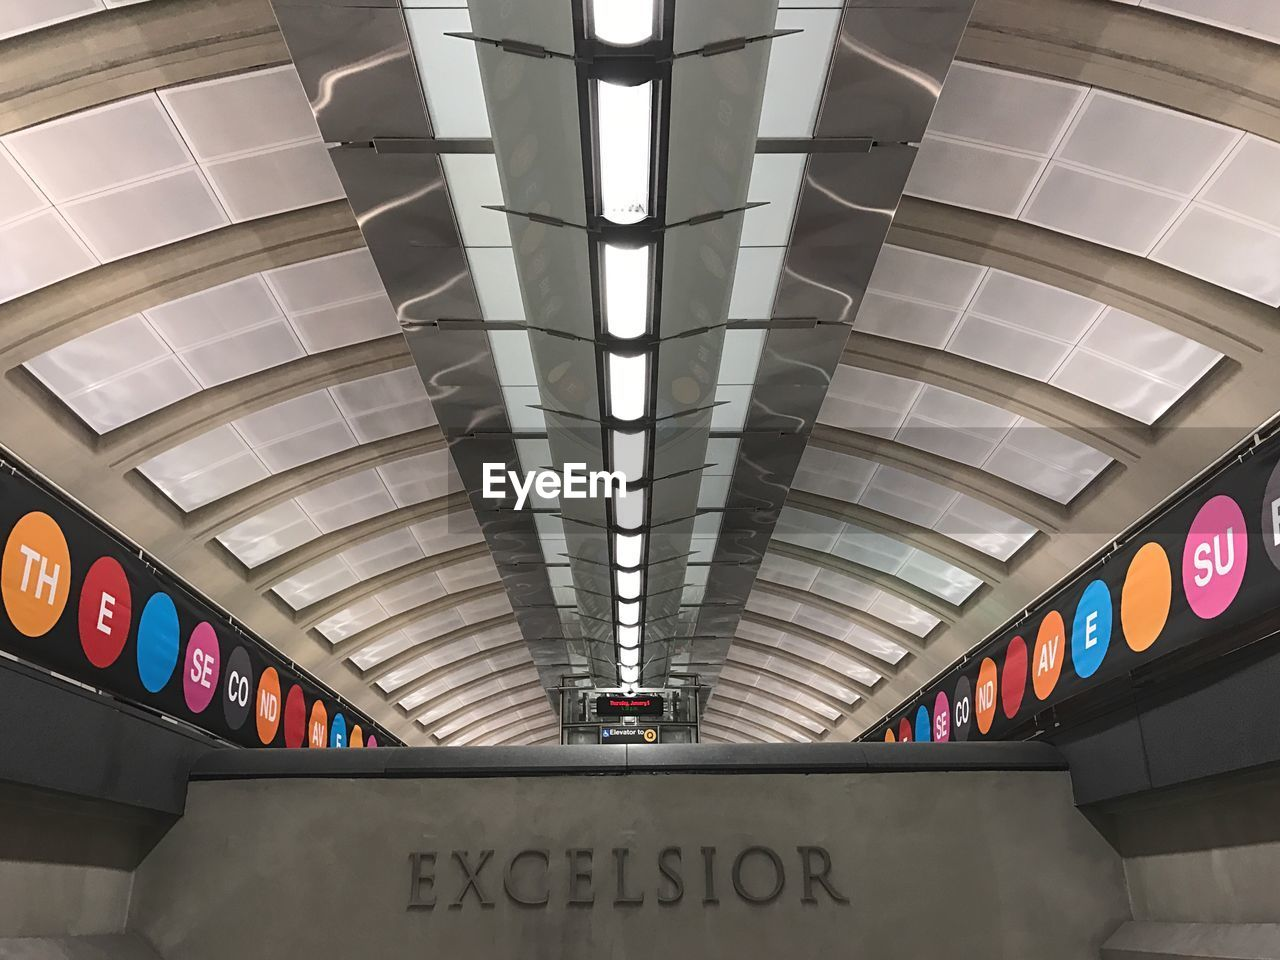 text, indoors, western script, architecture, communication, ceiling, built structure, transportation, modern, subway station, illuminated, transportation building - type of building, no people, day, city